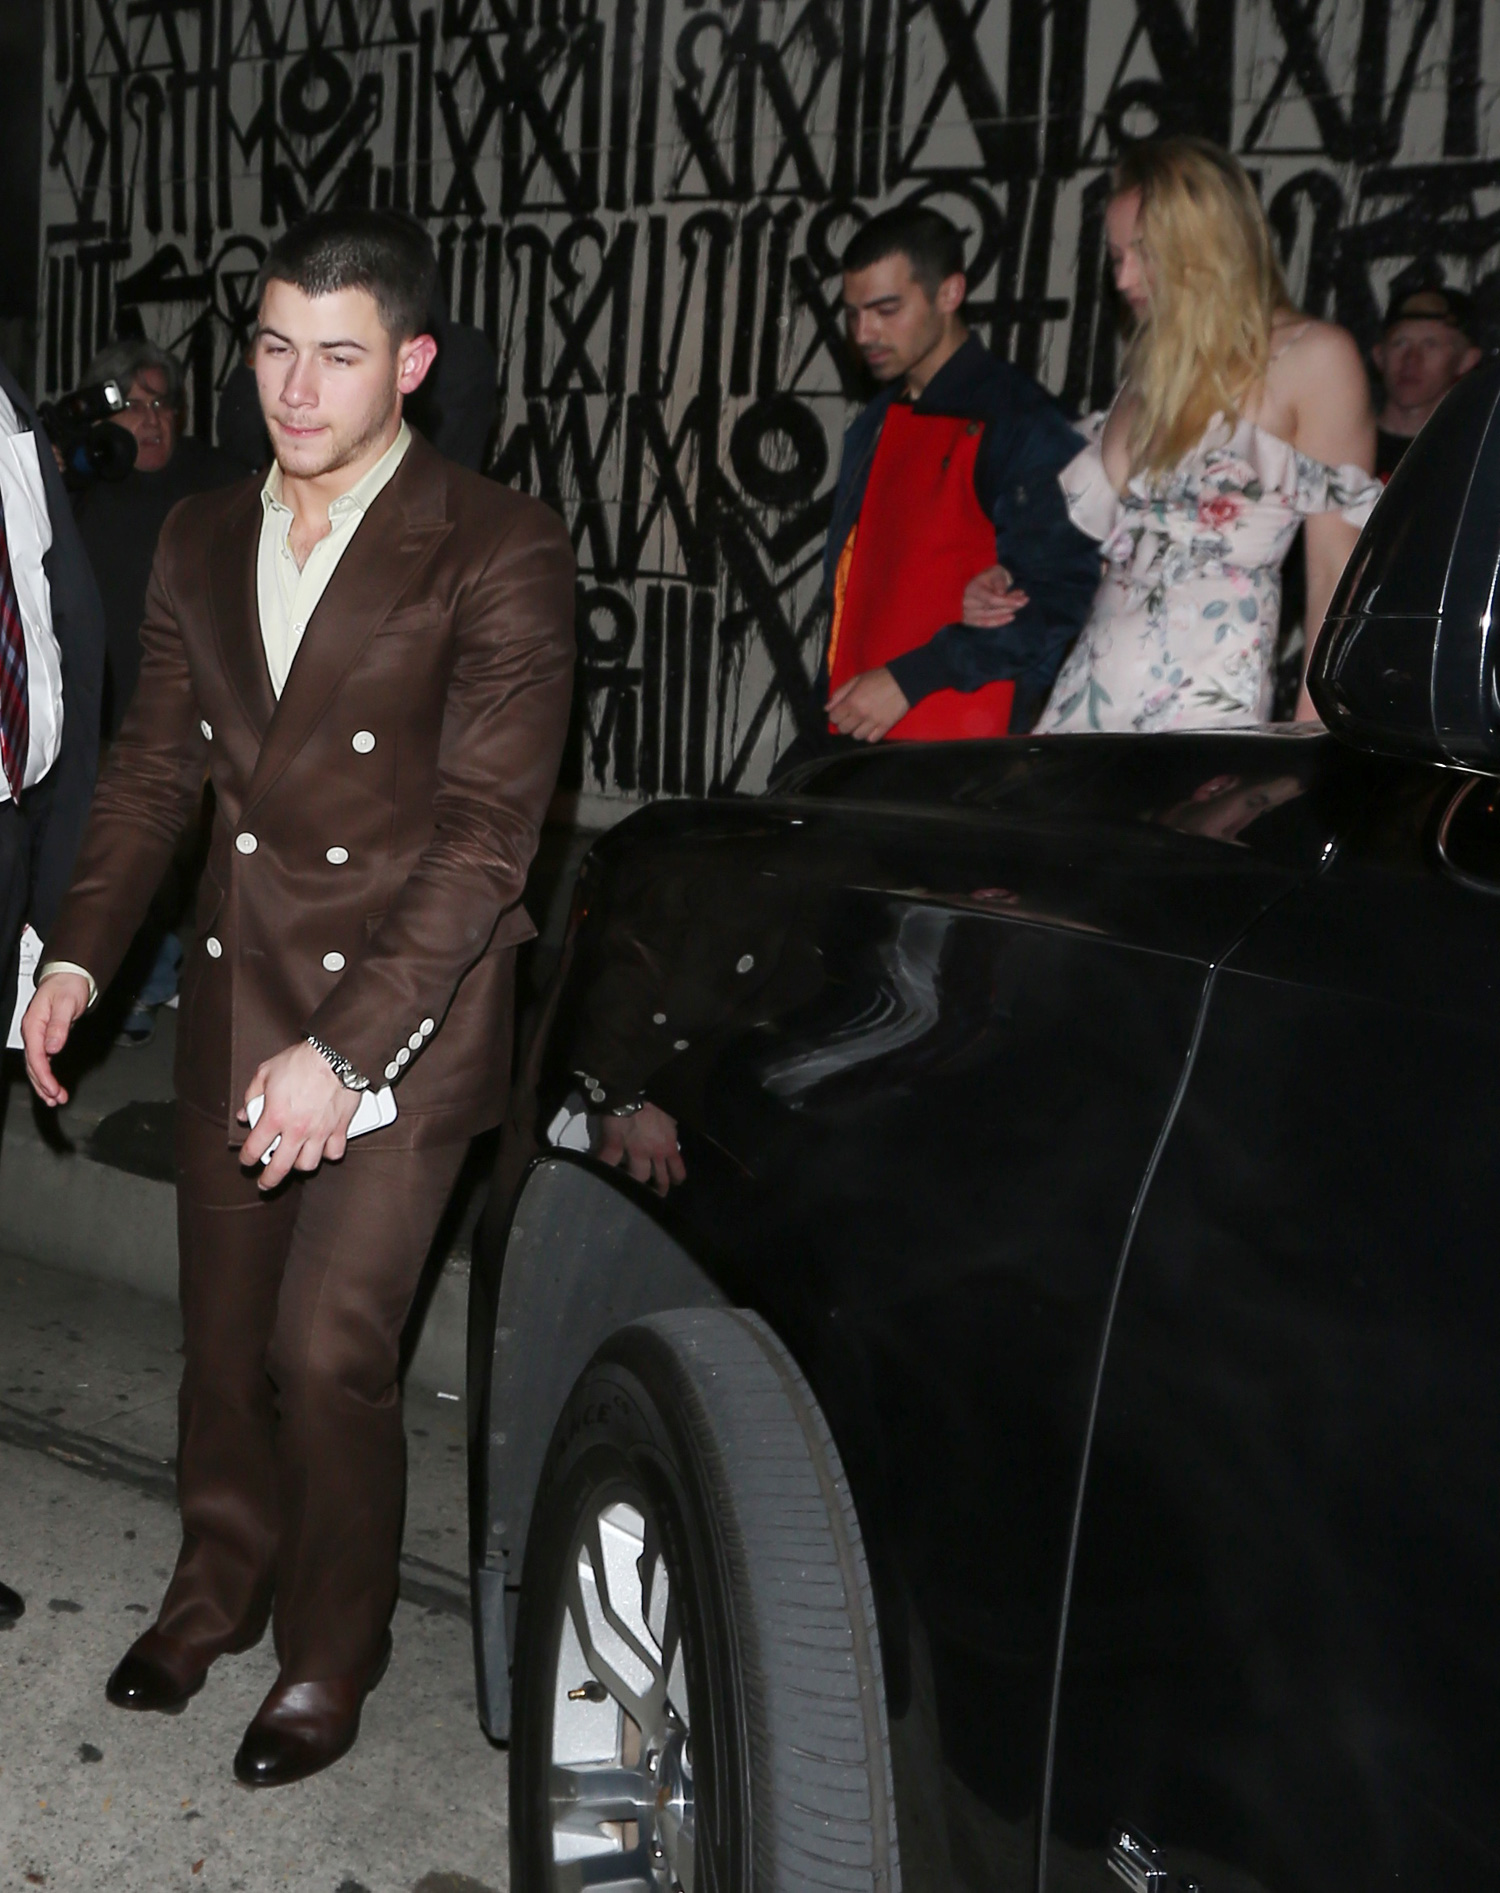 Nick Jonas and his brother Joe along with his girlfriend Sophie Turner dine at Craig's restaurant together